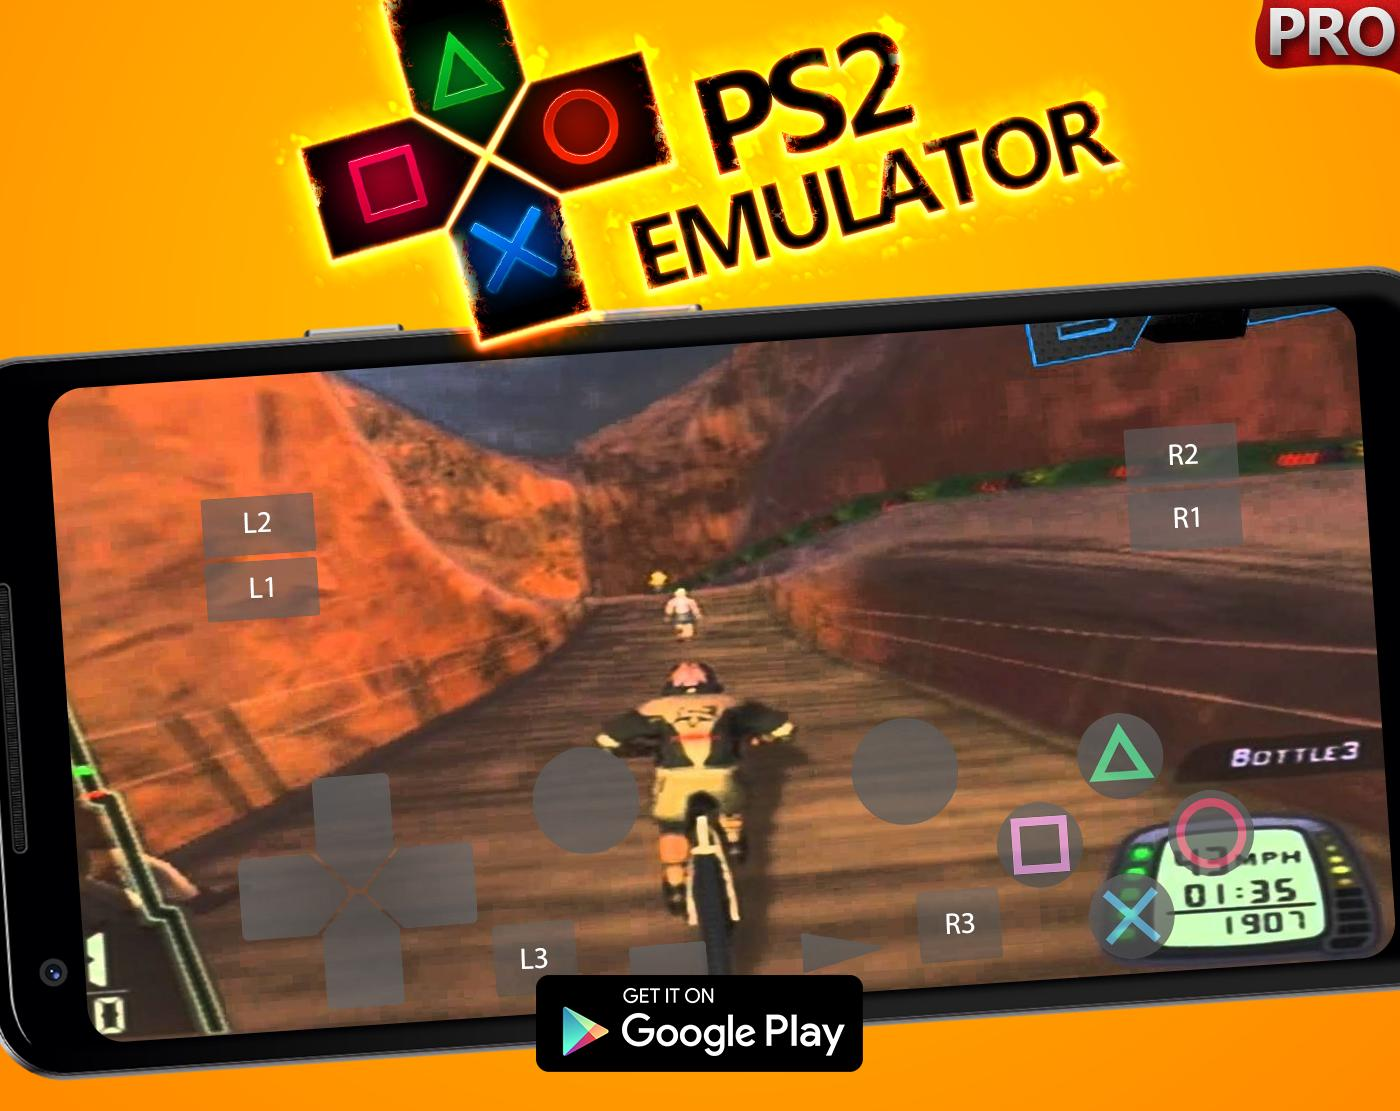 HD PS2 Emulator - PS2 Emulator For Android for Android - APK